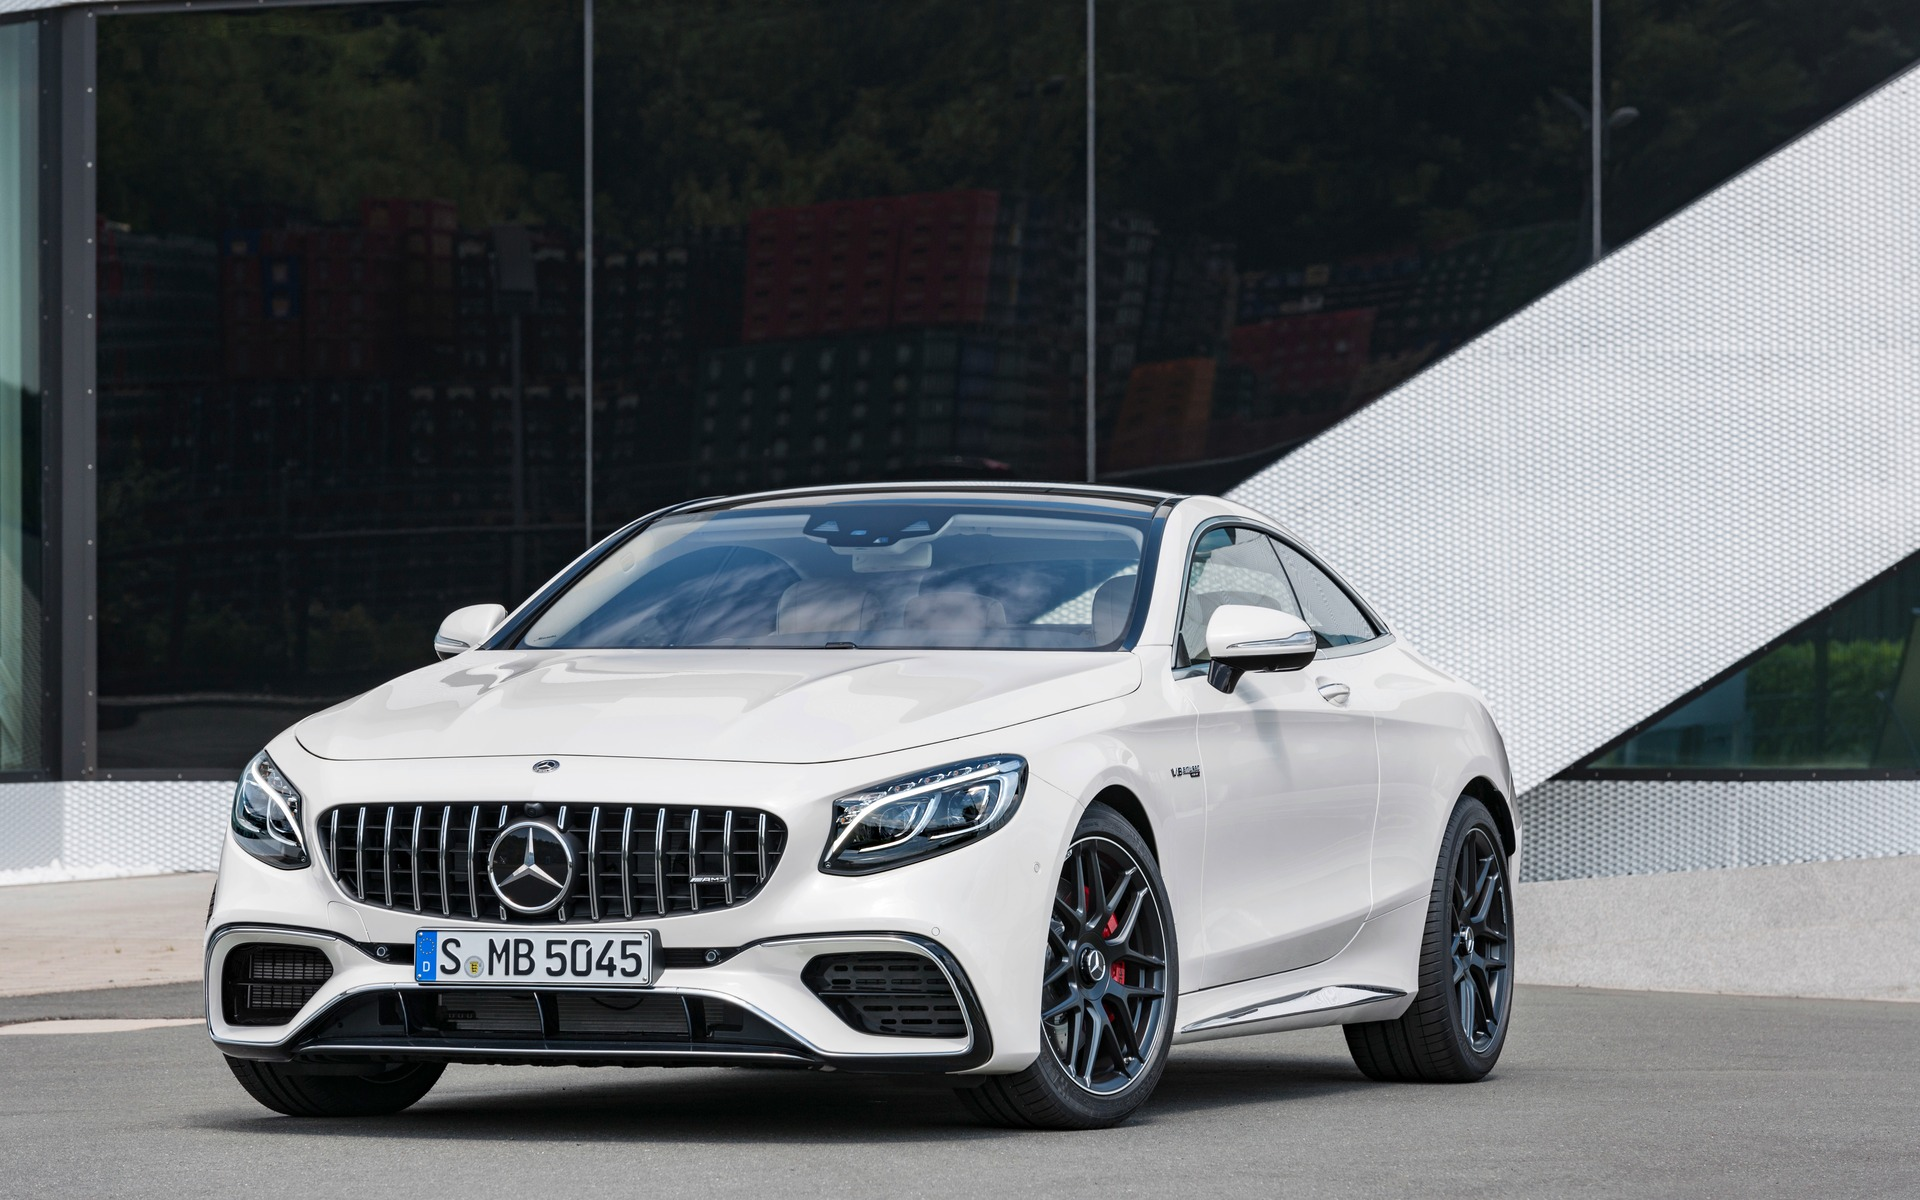 Updates for the 2018 Mercedes-Benz S-Class Coupe and Cabriolet - 15/46